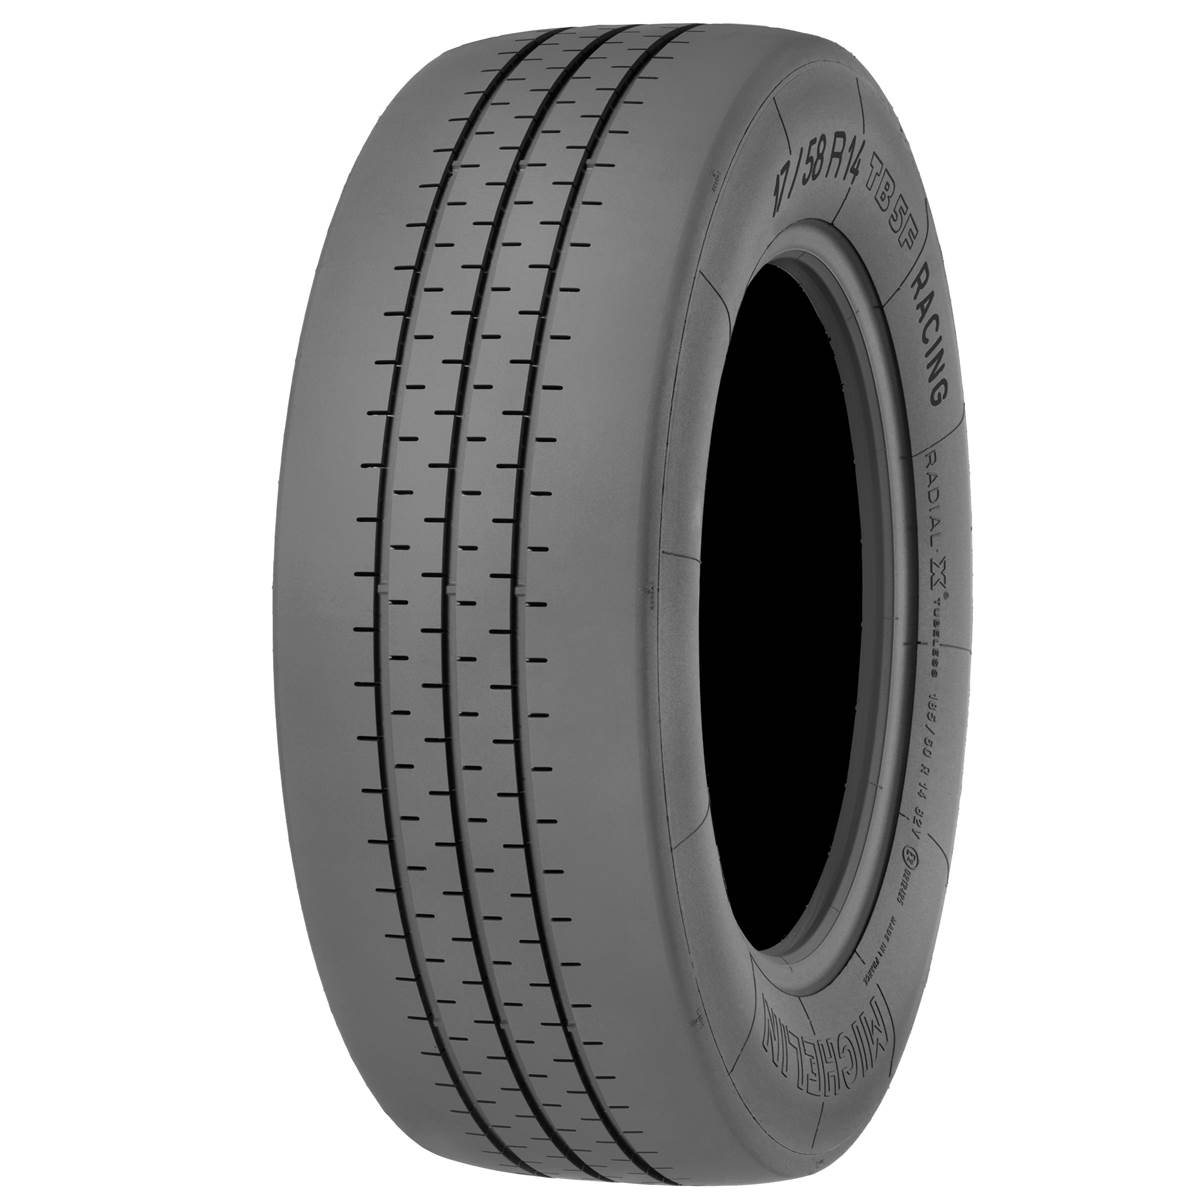 Pneu Michelin Collection 270/45R15 86W Tb5 F